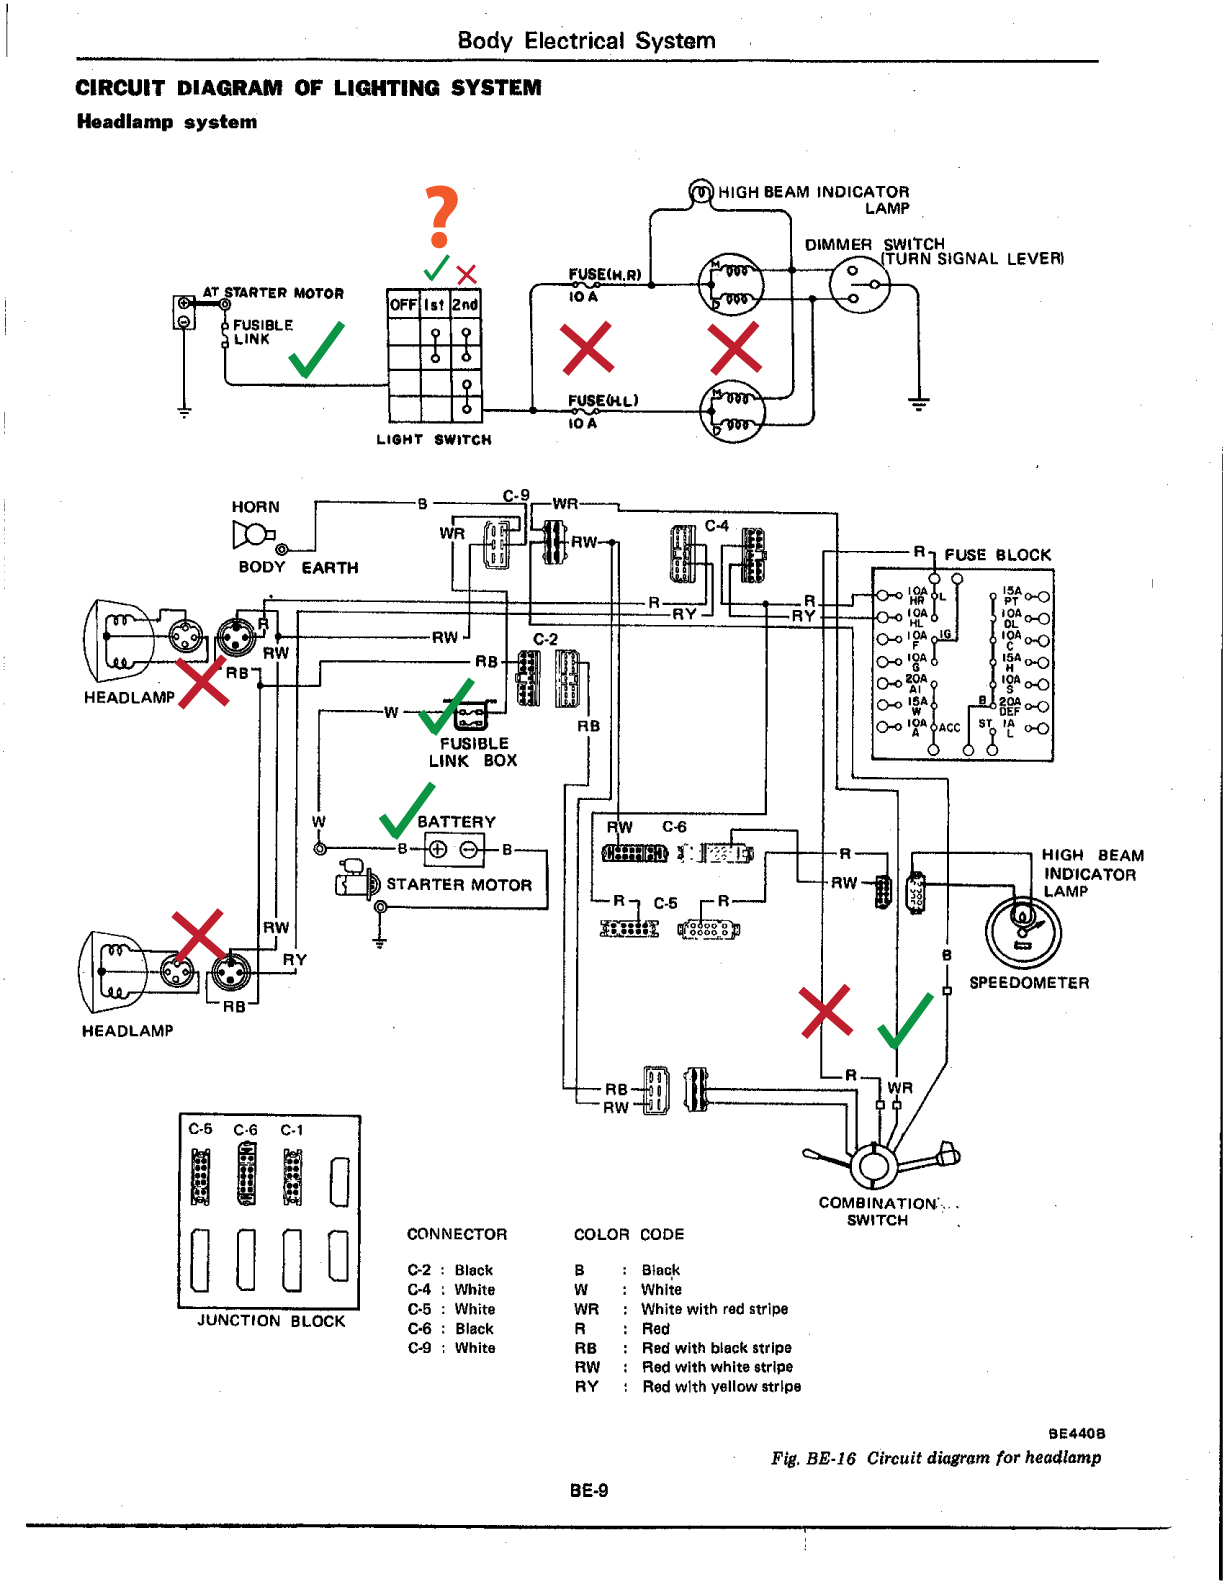 Car Fuse Box 280z Circuit Diagram Schema Symbols 78 Label Starting Know About Wiring U2022 Smart Location